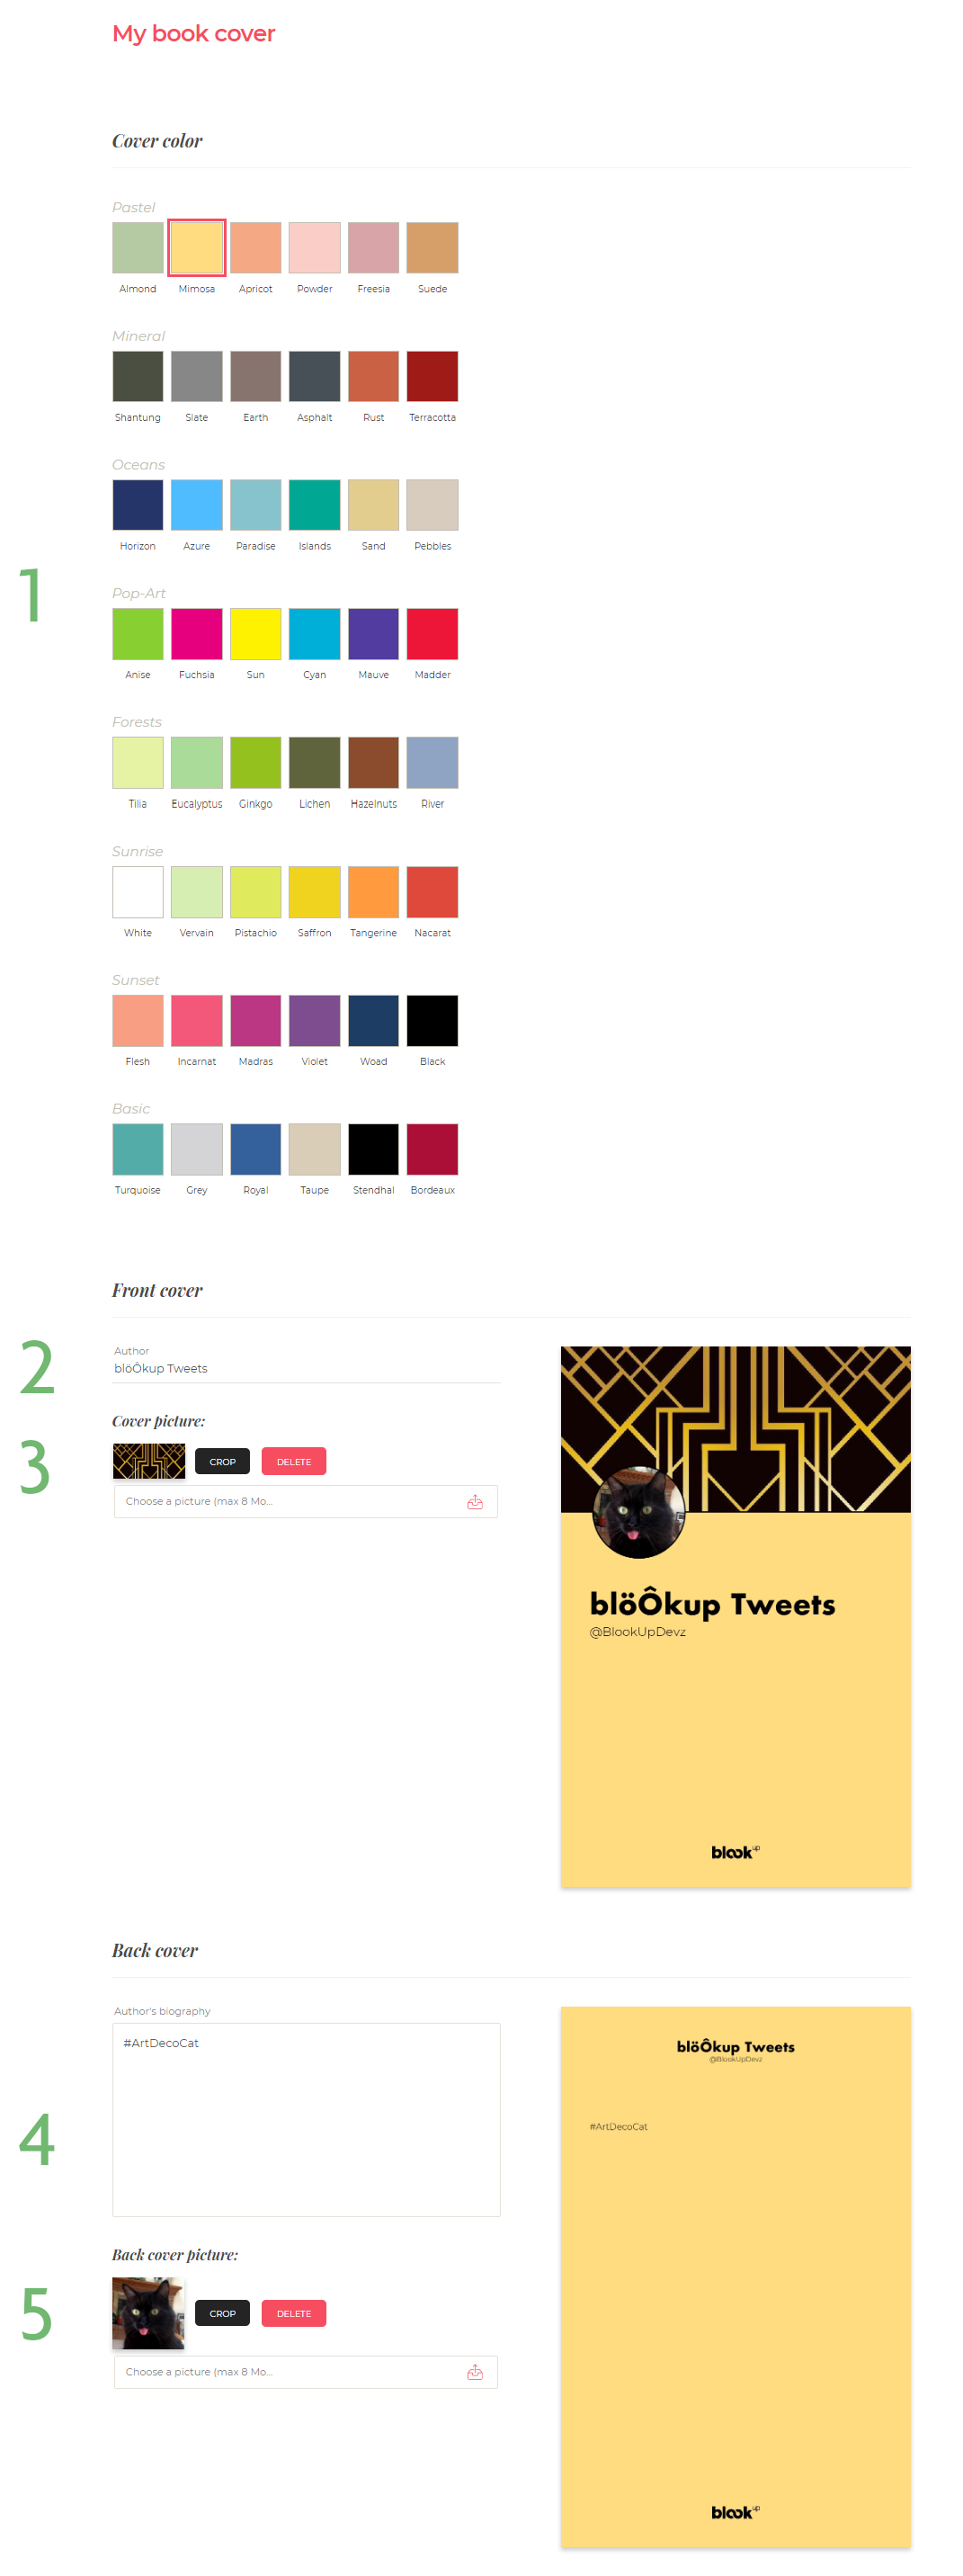 customizing the covers on a Twitter book